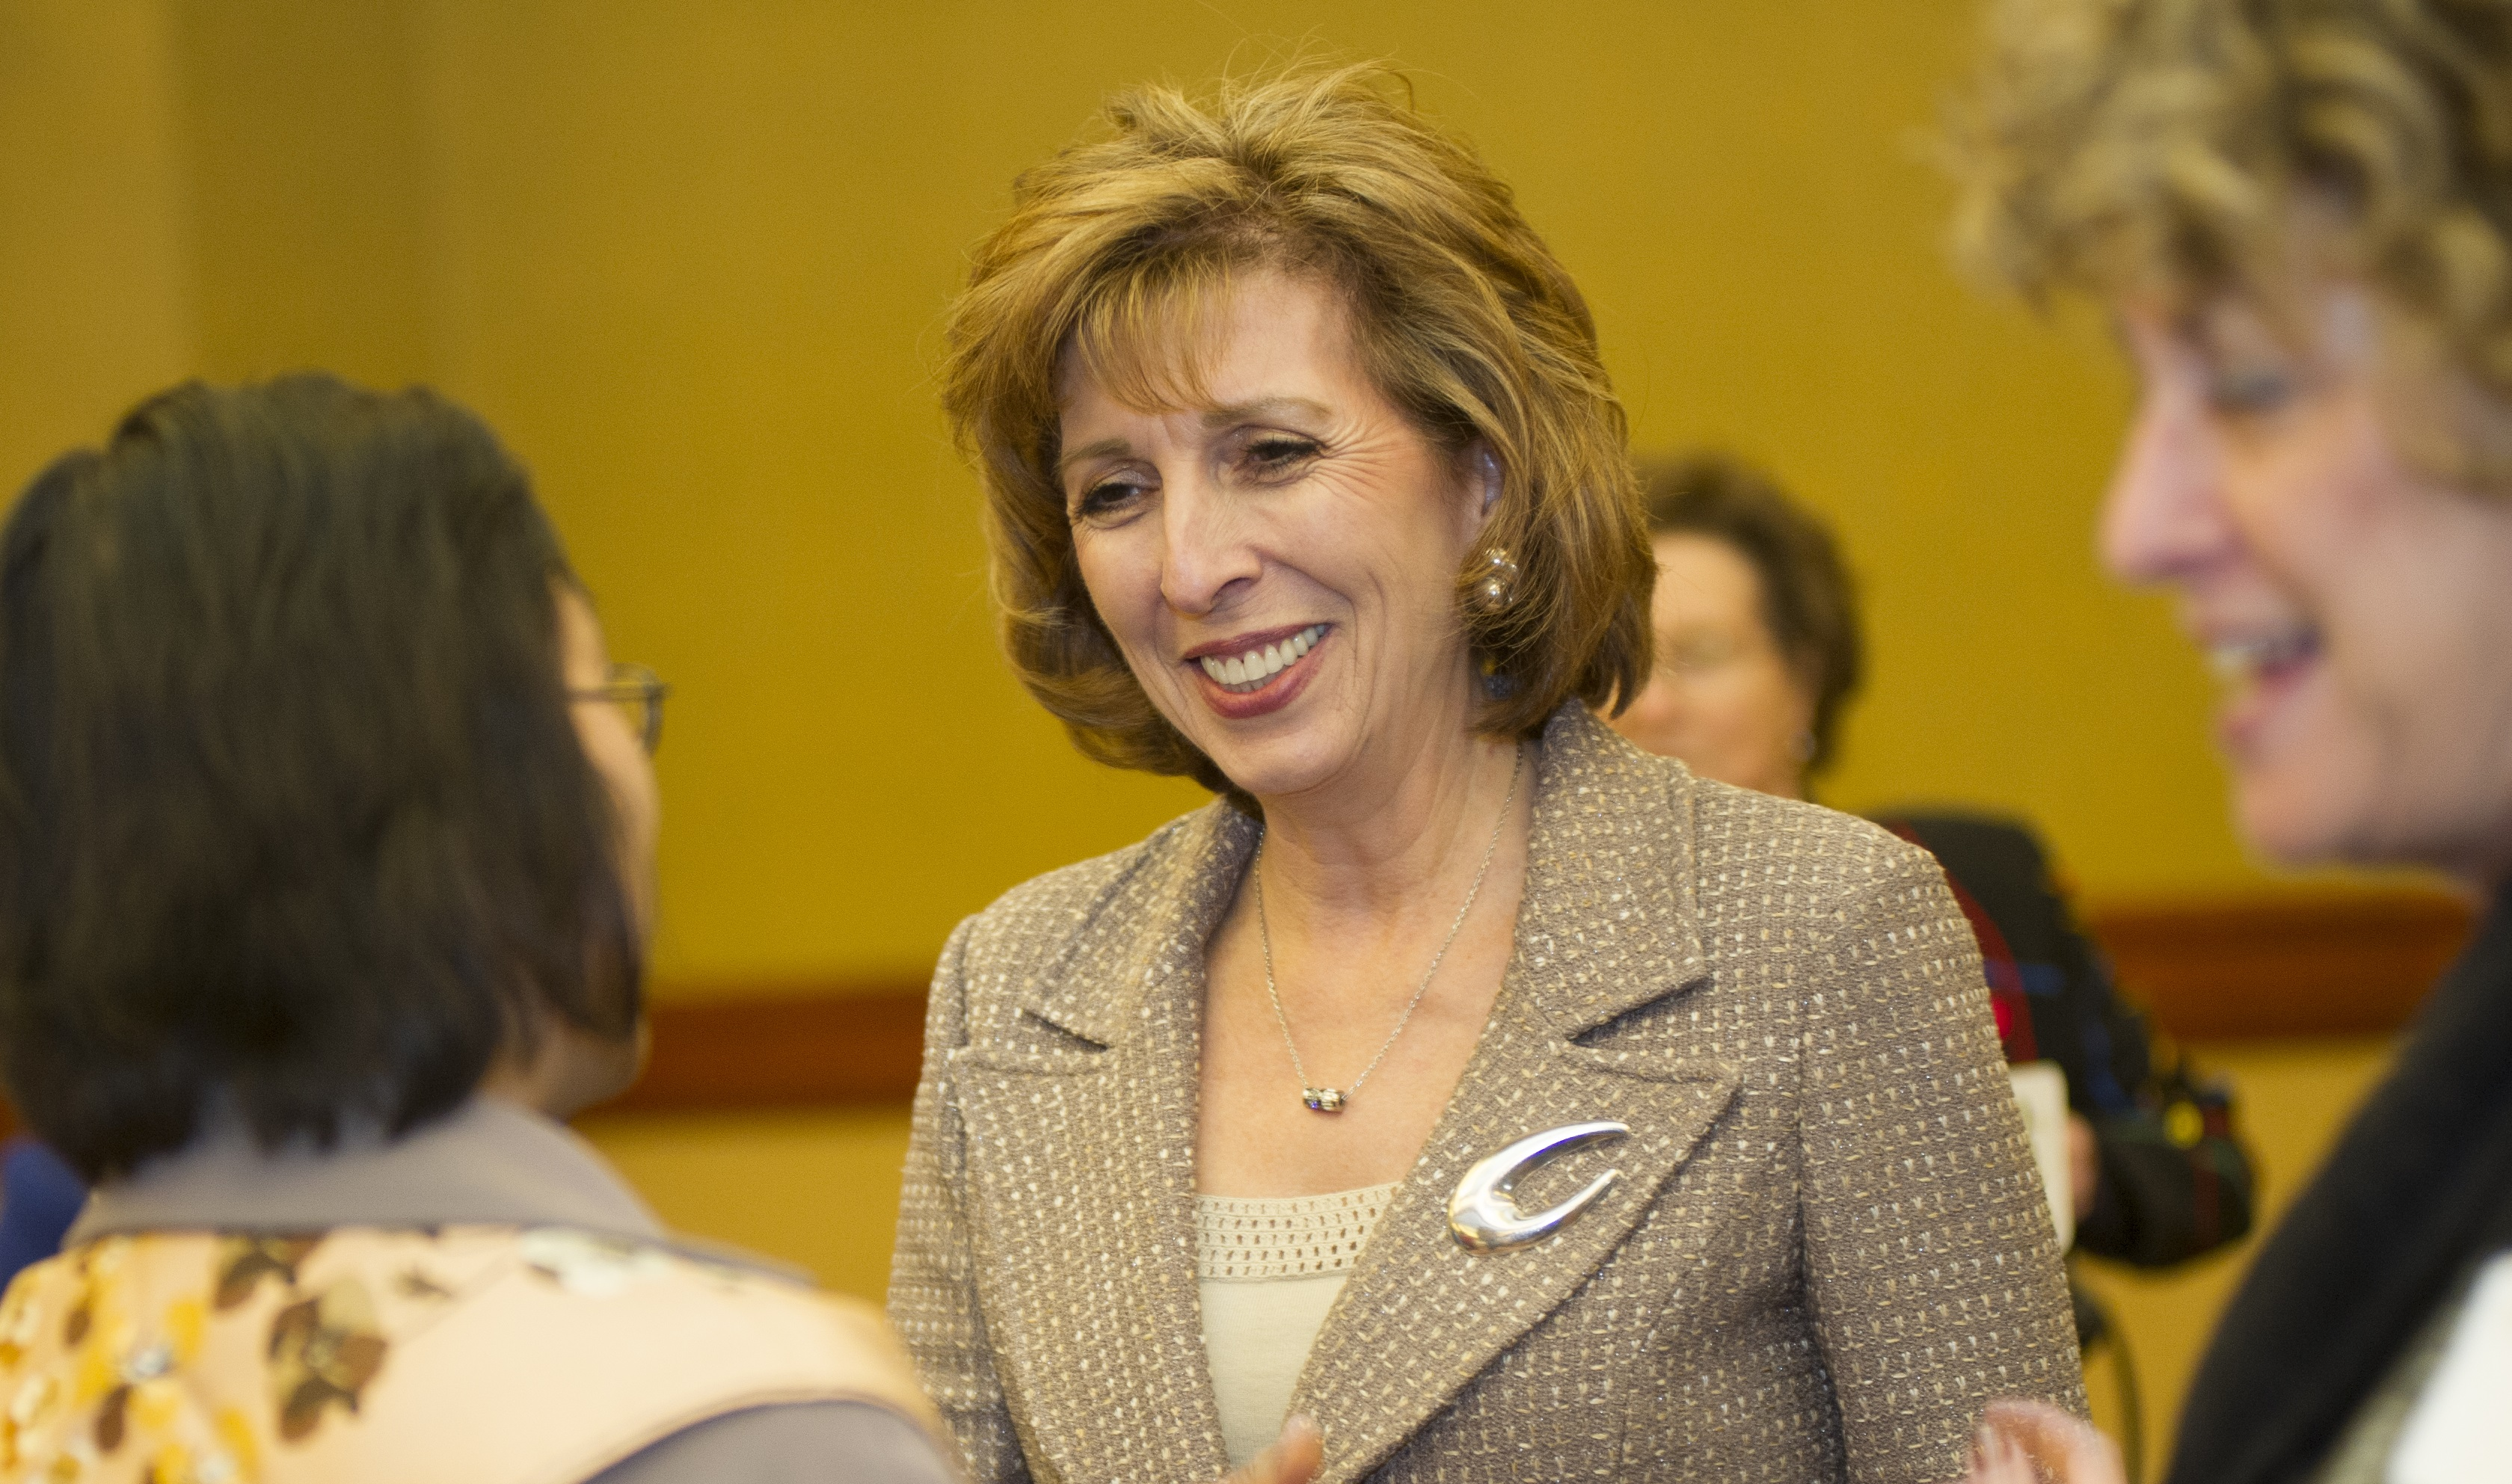 Chancellor Linda Katehi University of California Davis